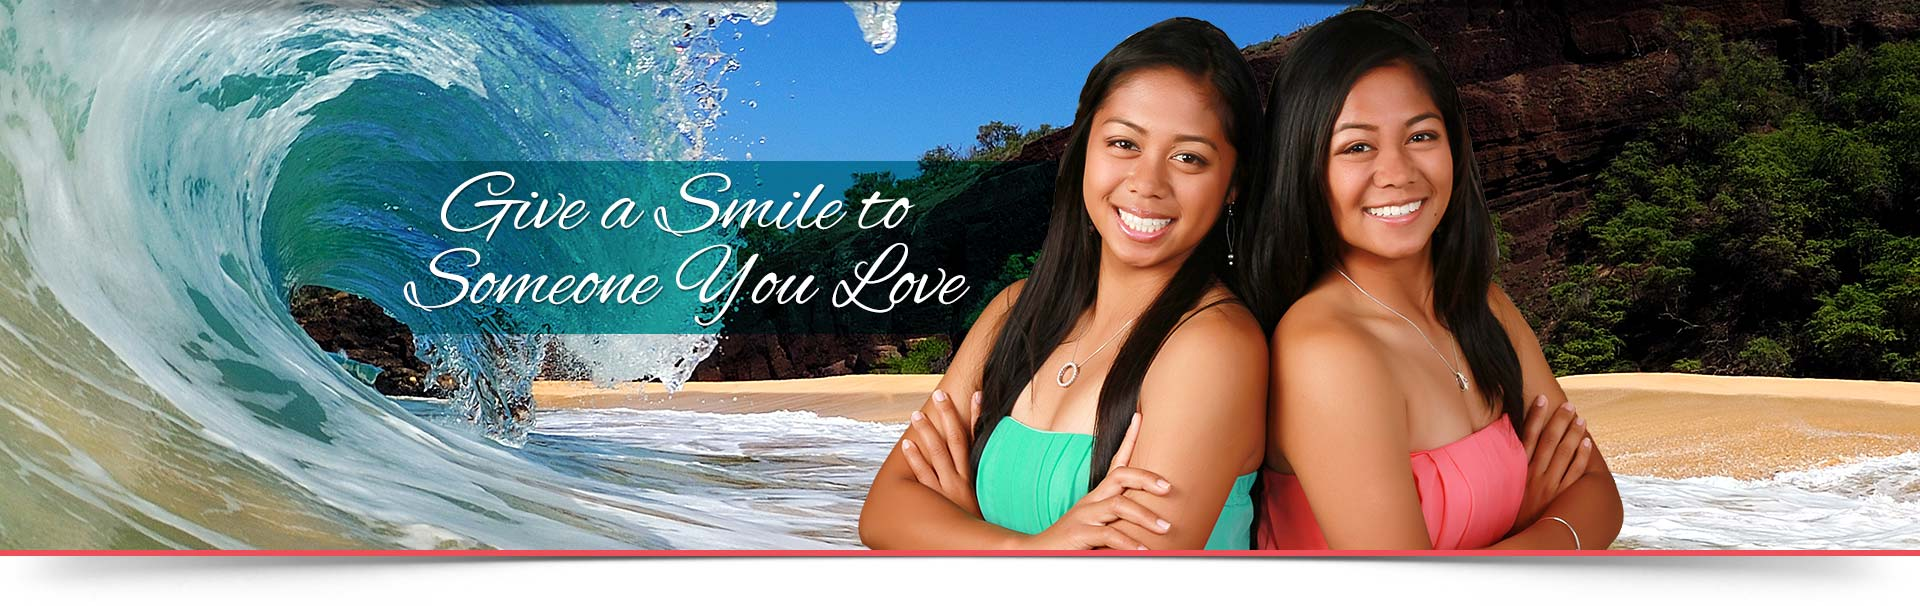 Maui Smile Works Wailuku Hawaii Beautiful Girls Smiling